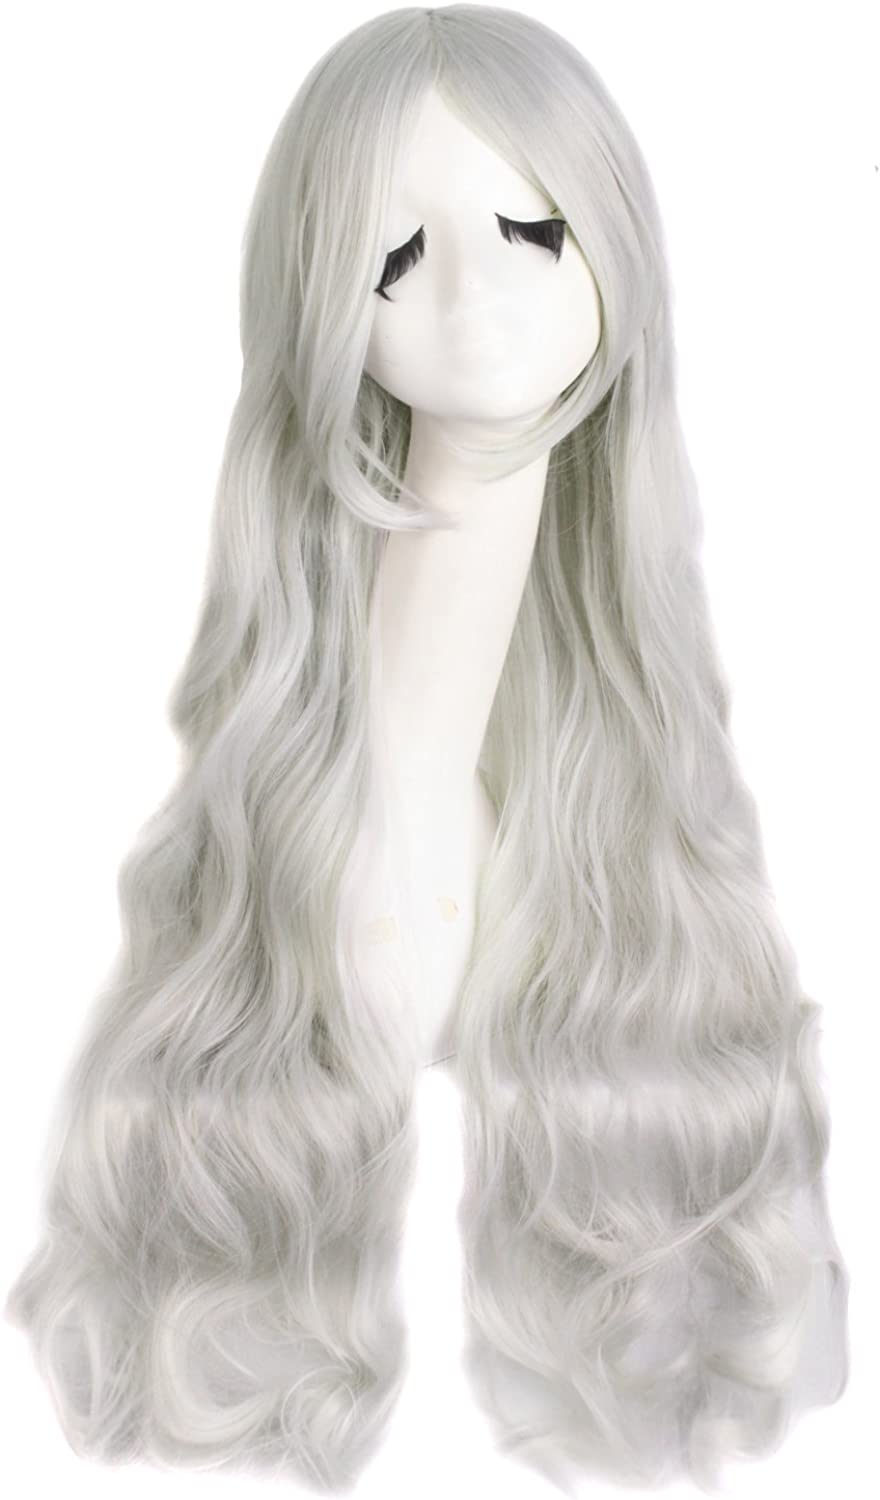 MapofBeauty 32 80cm Long Hair Spiral Curly Cosplay Costume Wig Light Blonde